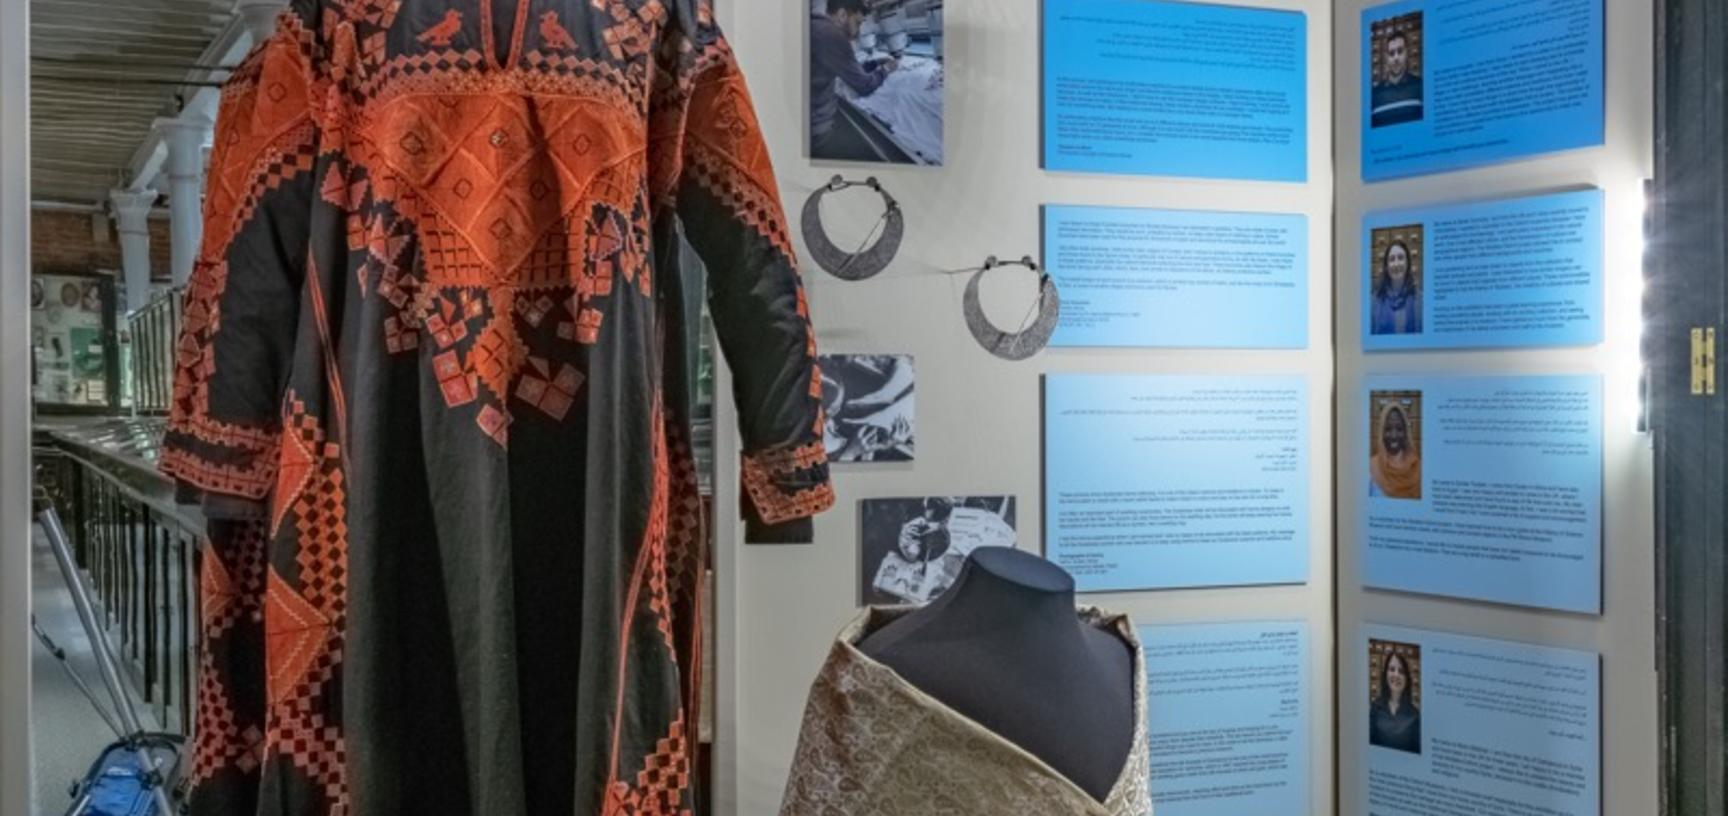 'Multaka: Connecting Threads', Pitt Rivers Museum, University of Oxford, 1 April 2019 to 10 February 2020.